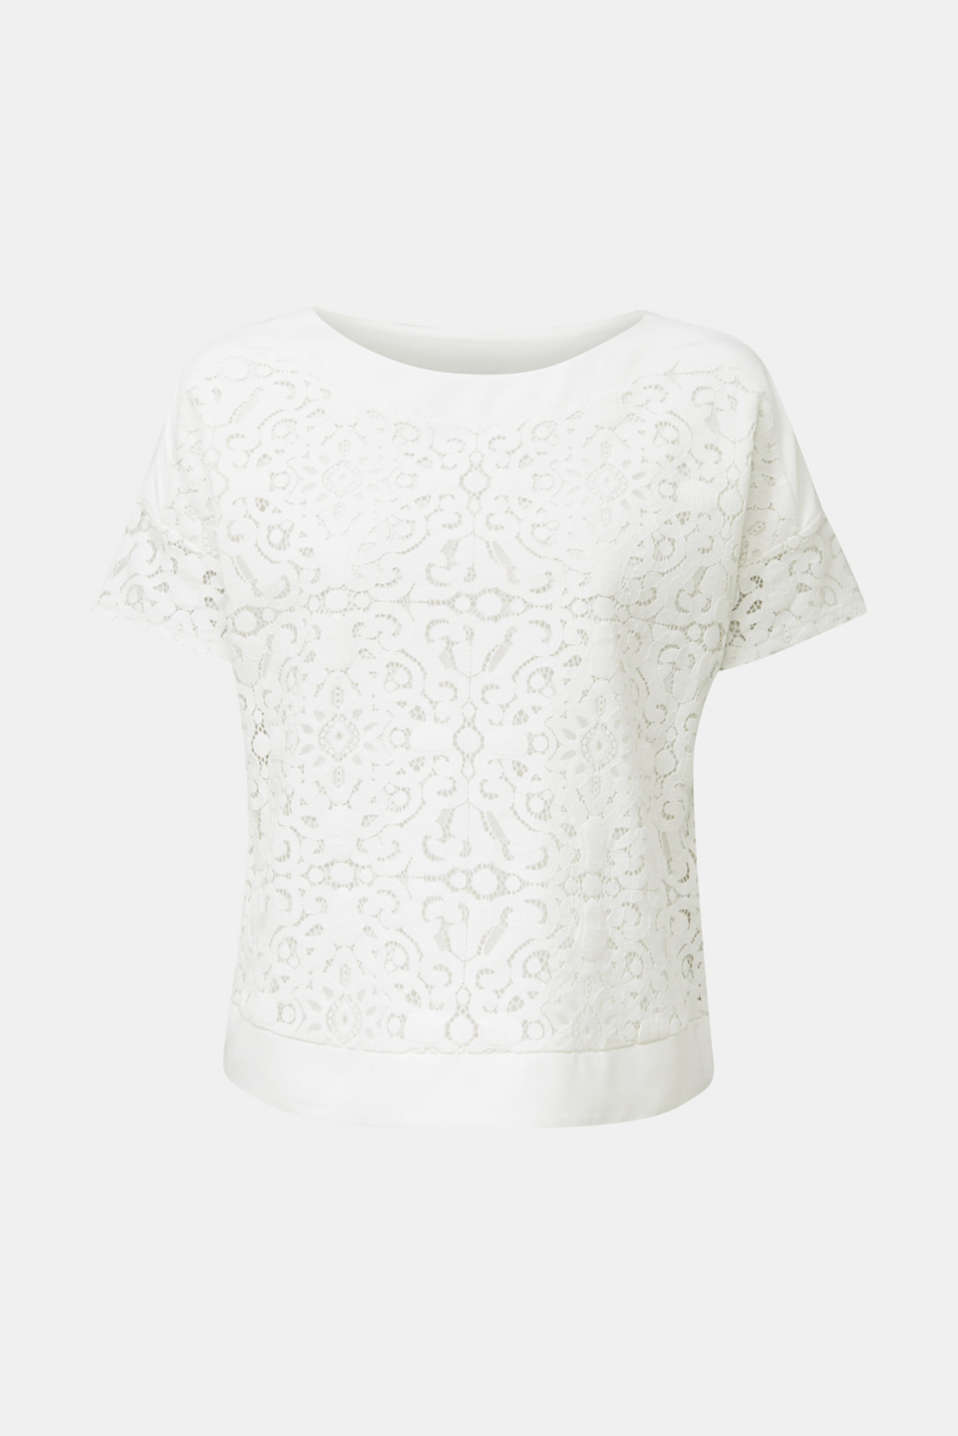 Floral lace blouse top, OFF WHITE, detail image number 6